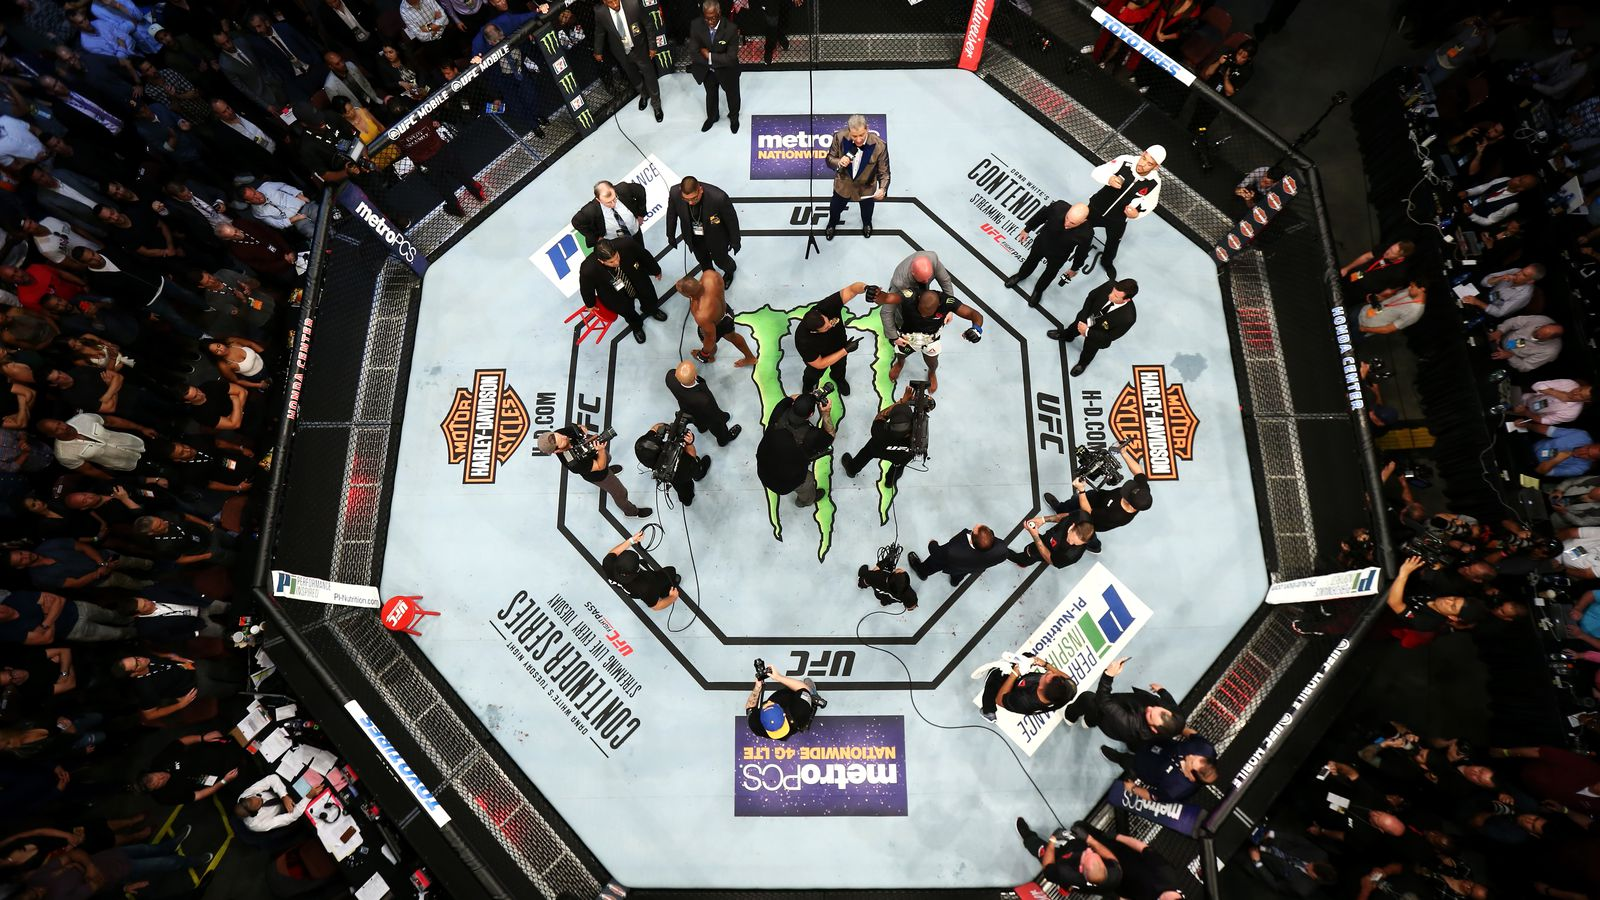 Midnight Mania! DC Allowed To Stumble Around Cage After KO Loss